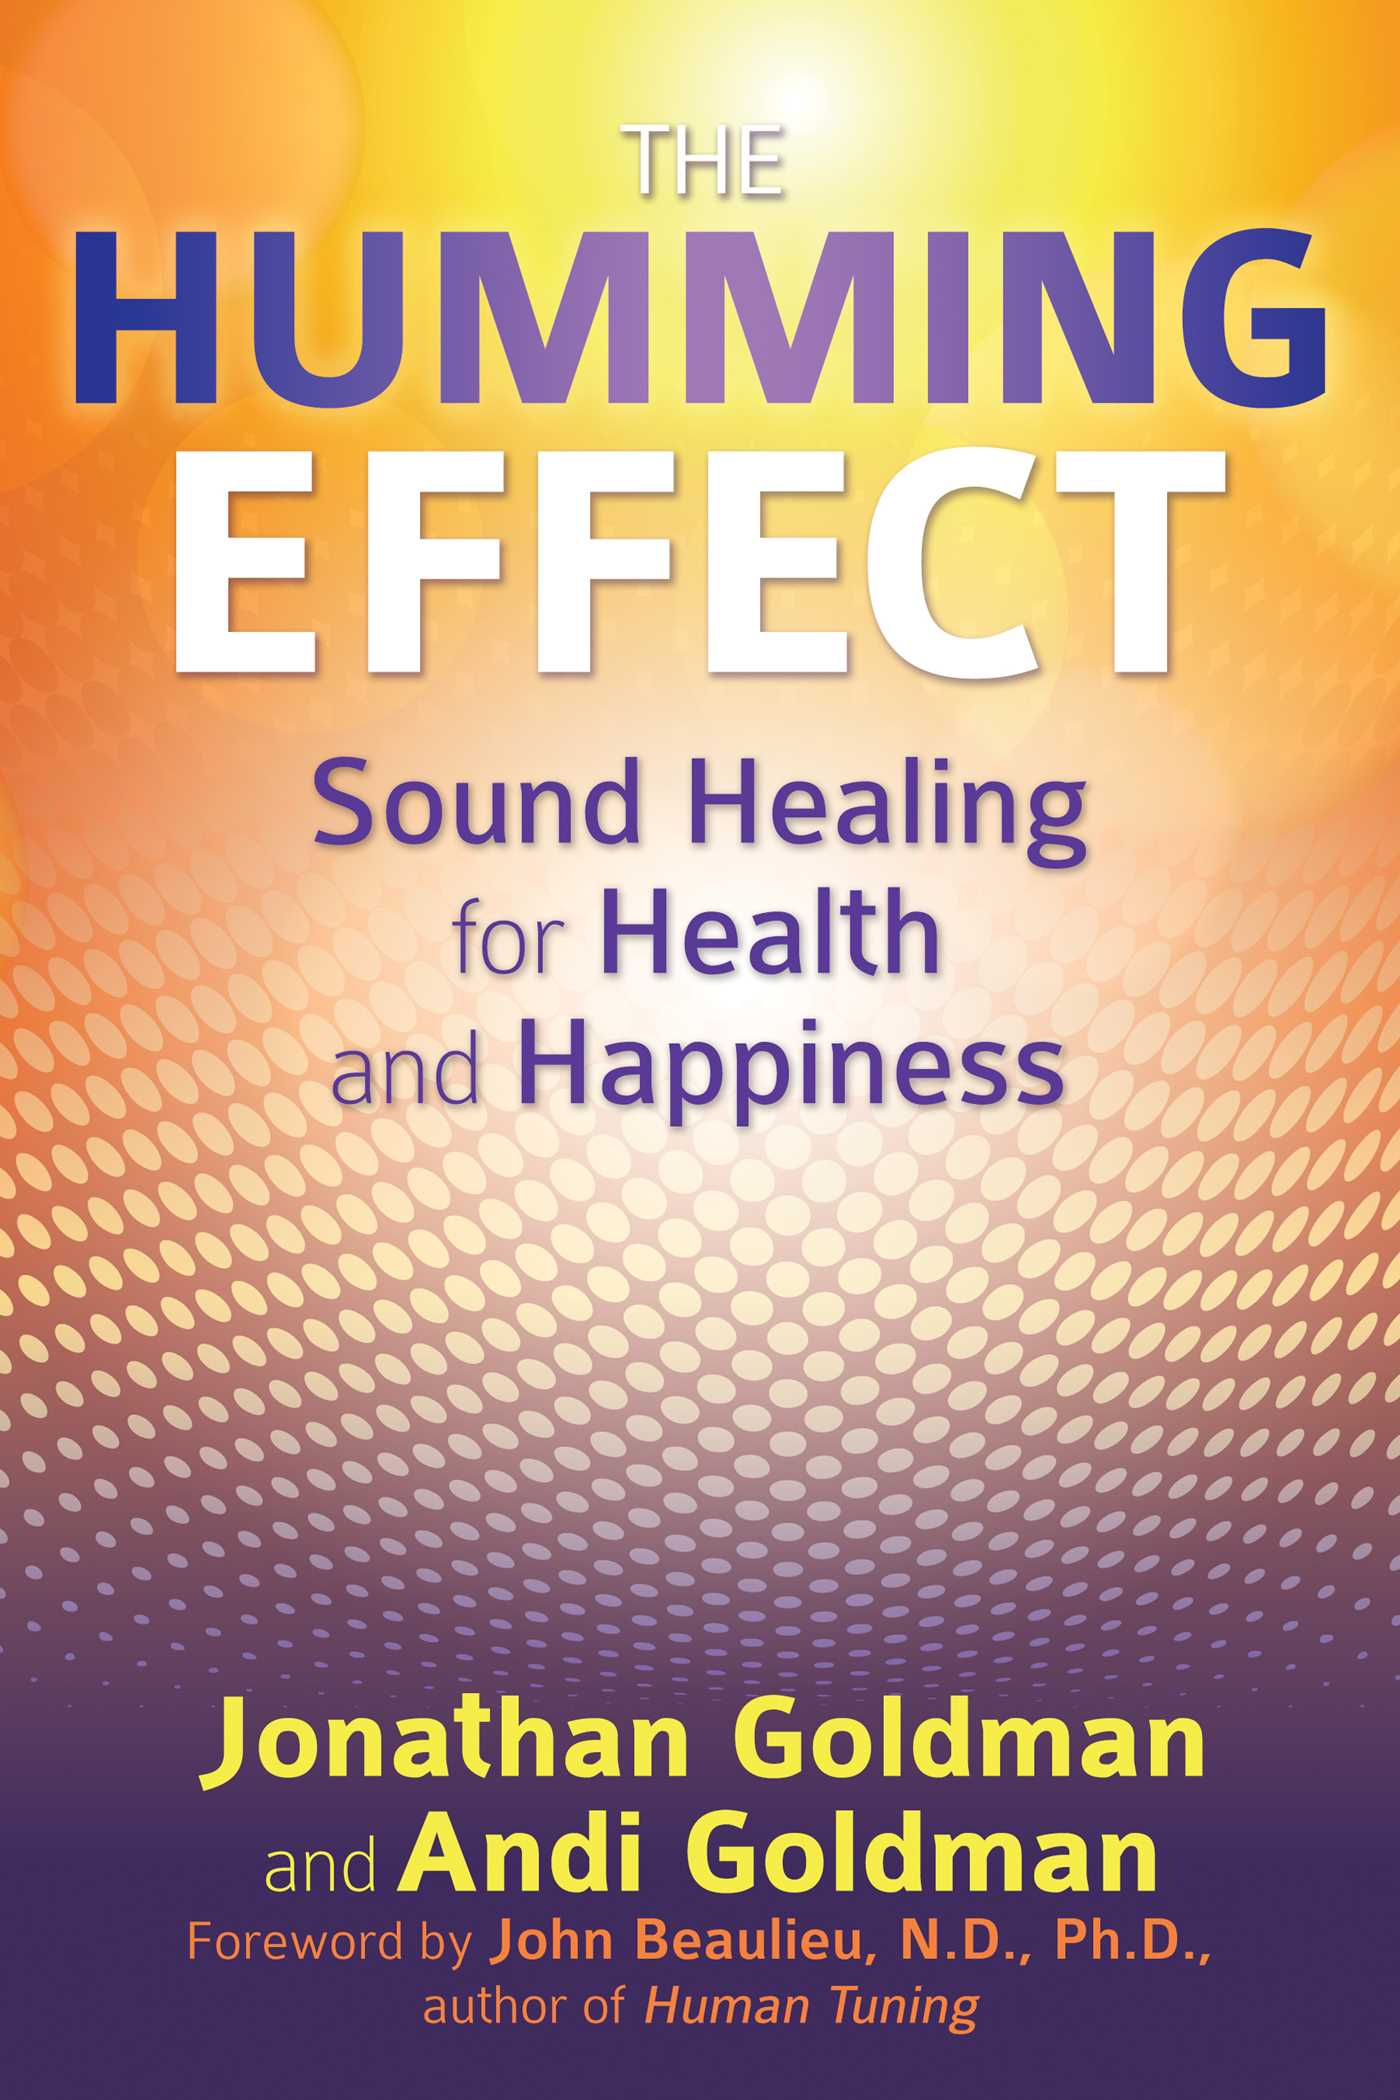 The humming effect 9781620554845 hr